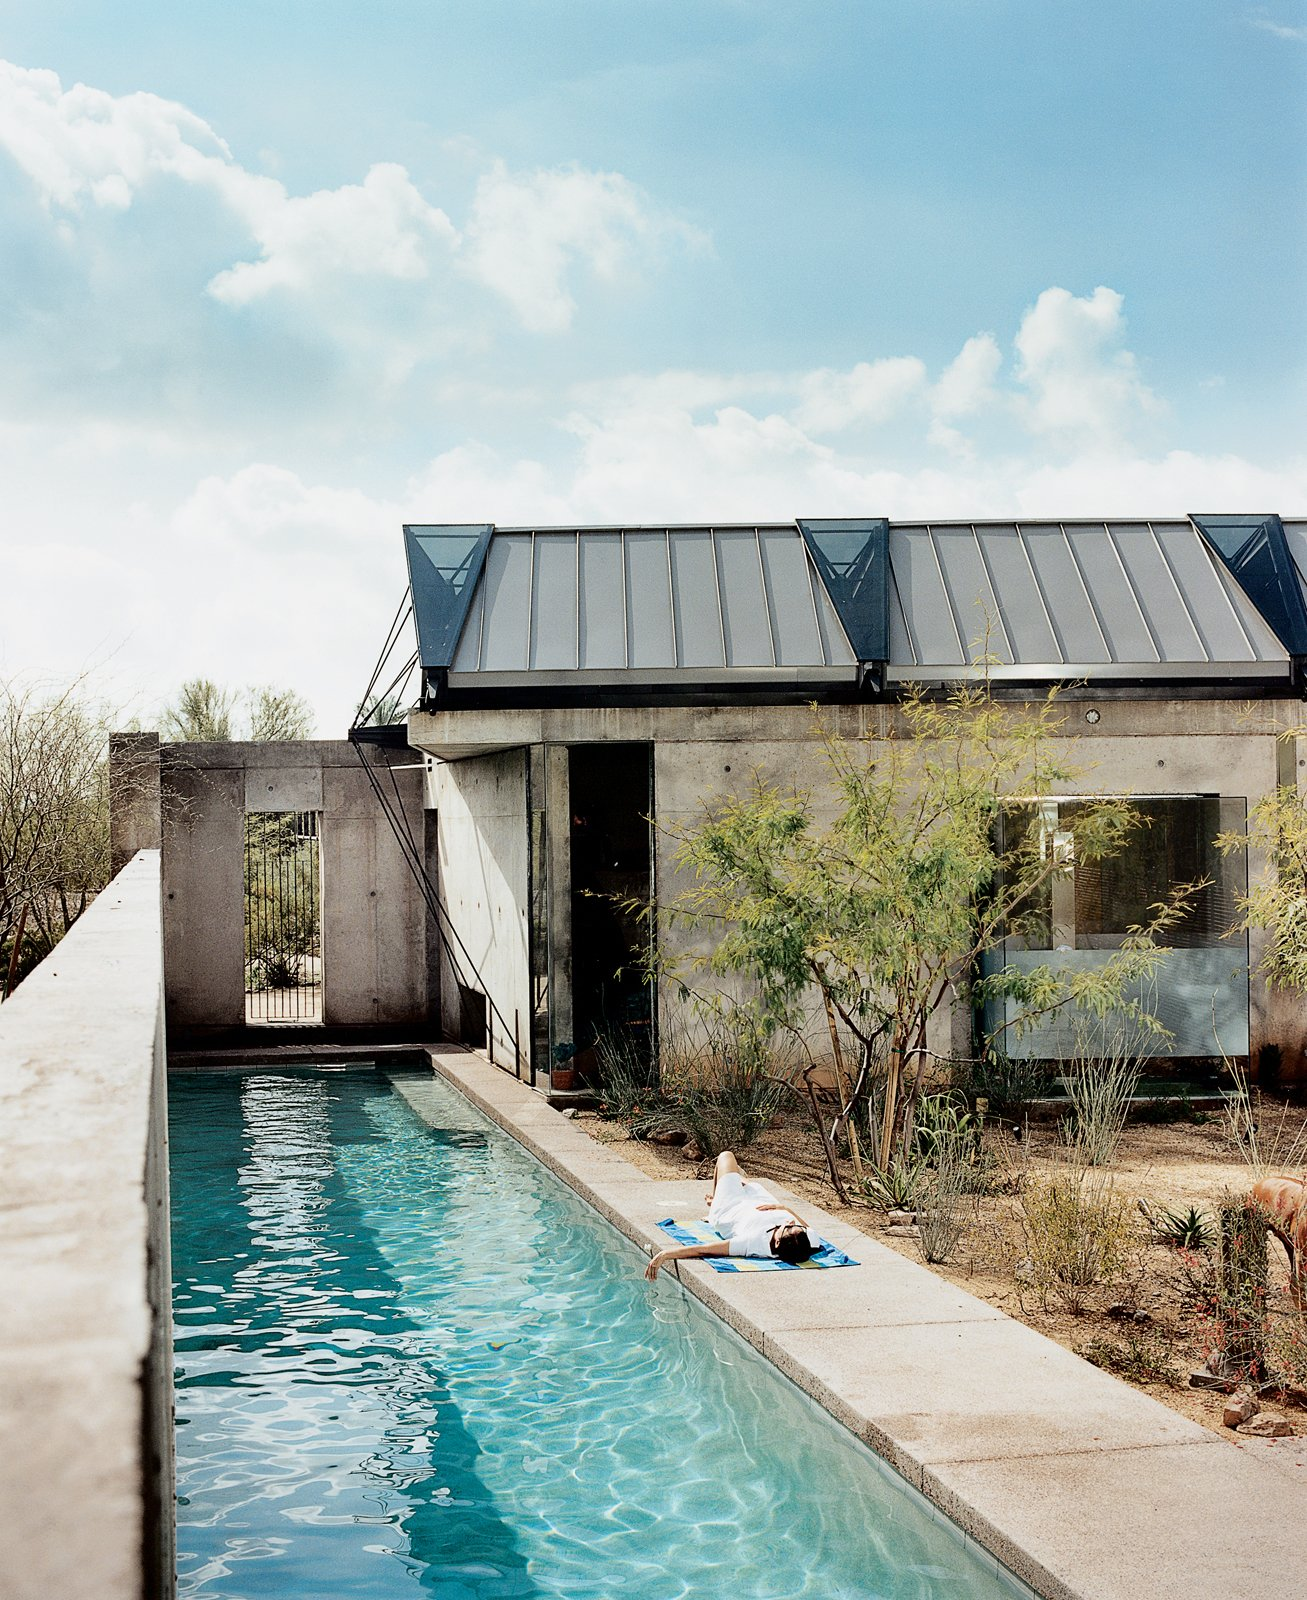 #pool #pooldesign #outdoor #exterior #modern #modernarchitecture #minimal #Phoenix #Arizona #MarwanAlSayed #TheConstructionZone   Outdoor Living from Outdoor Spaces